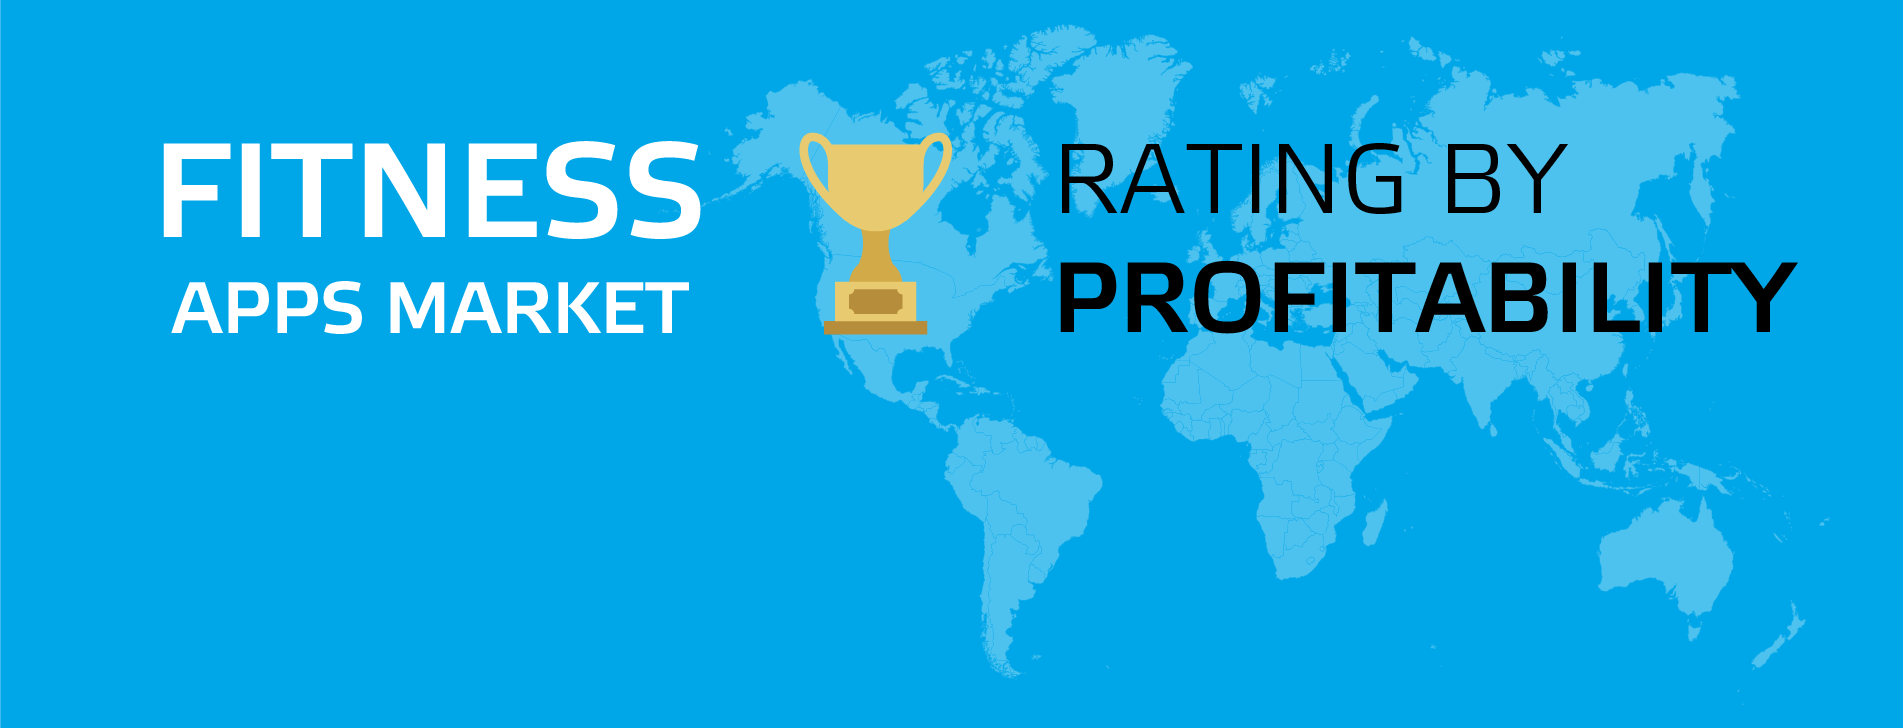 MOBILE FITNESS APP MARKET RATING BY PROFITABILITY